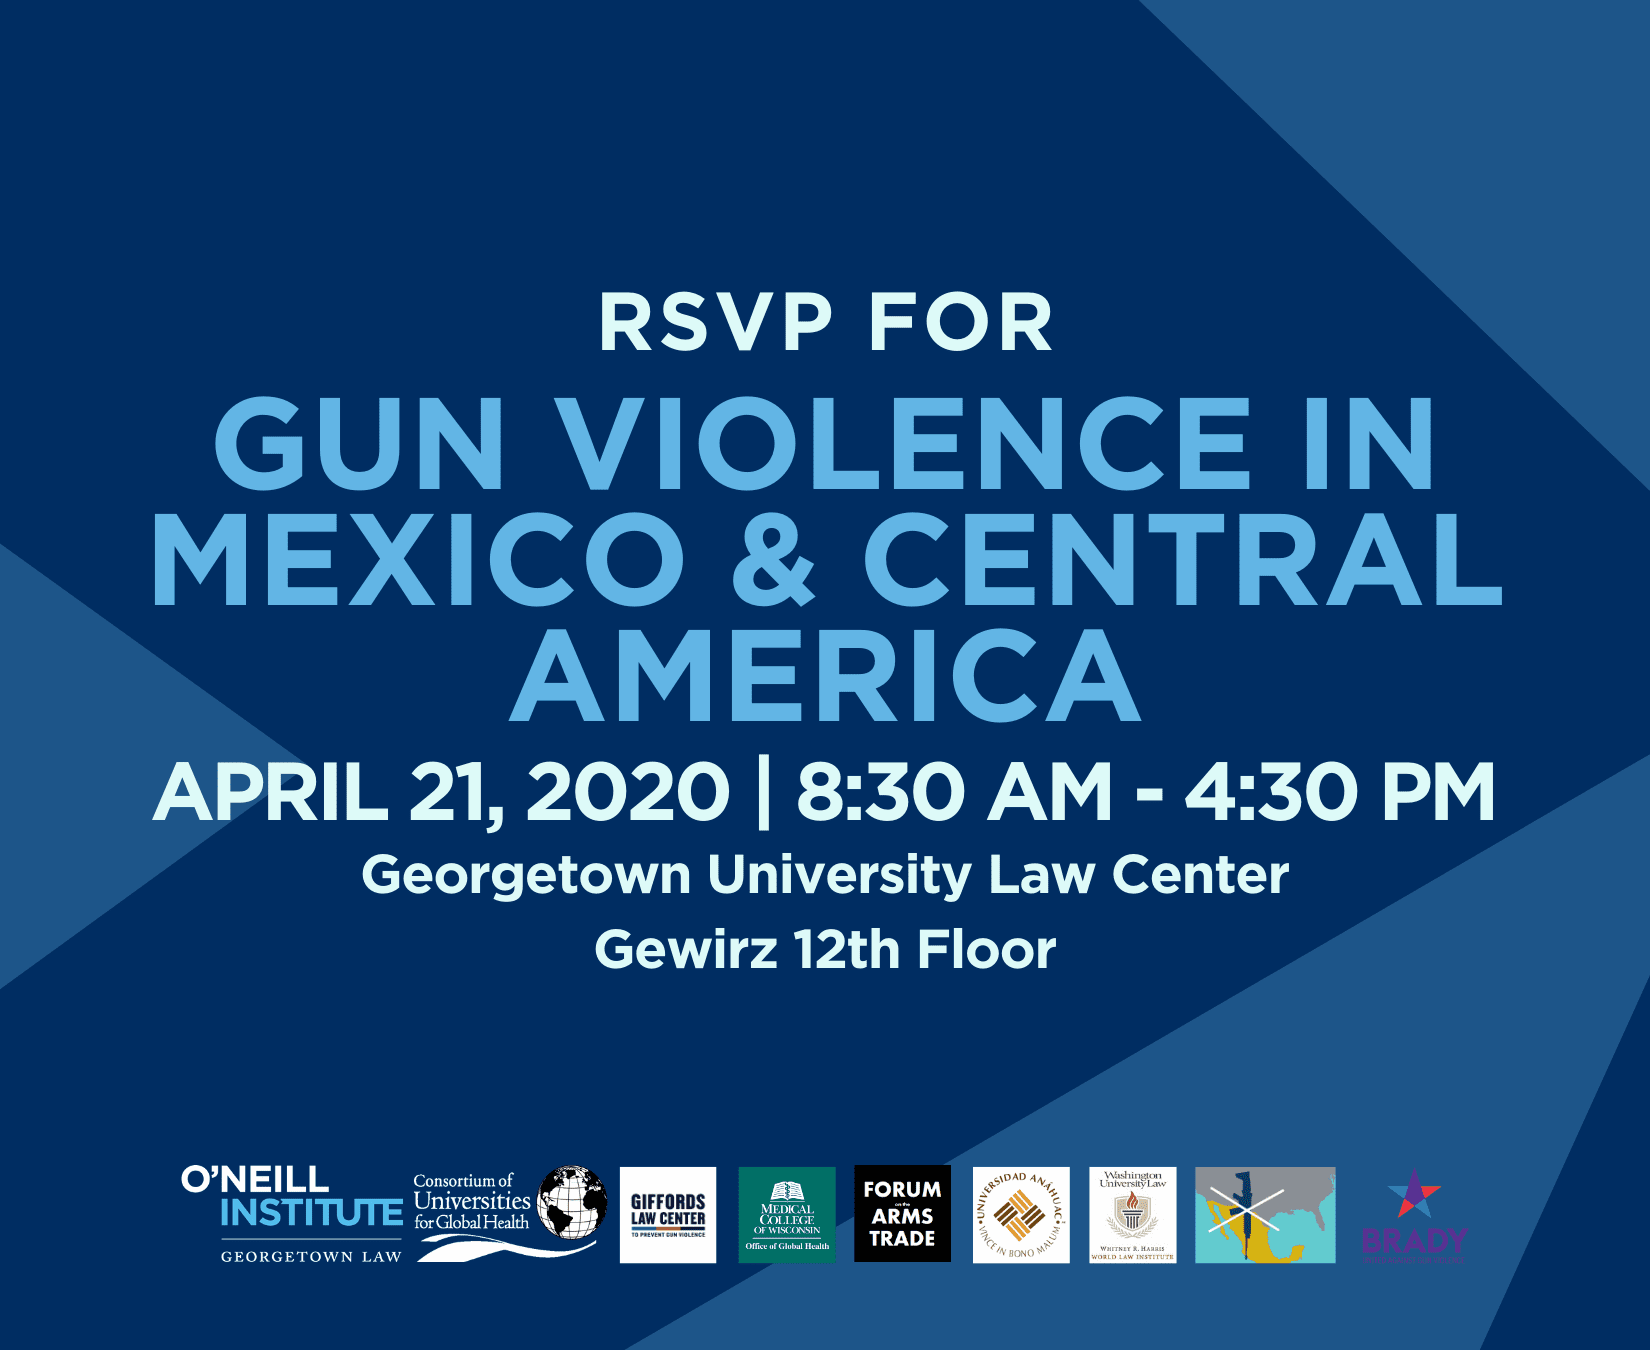 Gun Violence in Mexico & Central America. 4/21/2020 Georgetown University Law Center